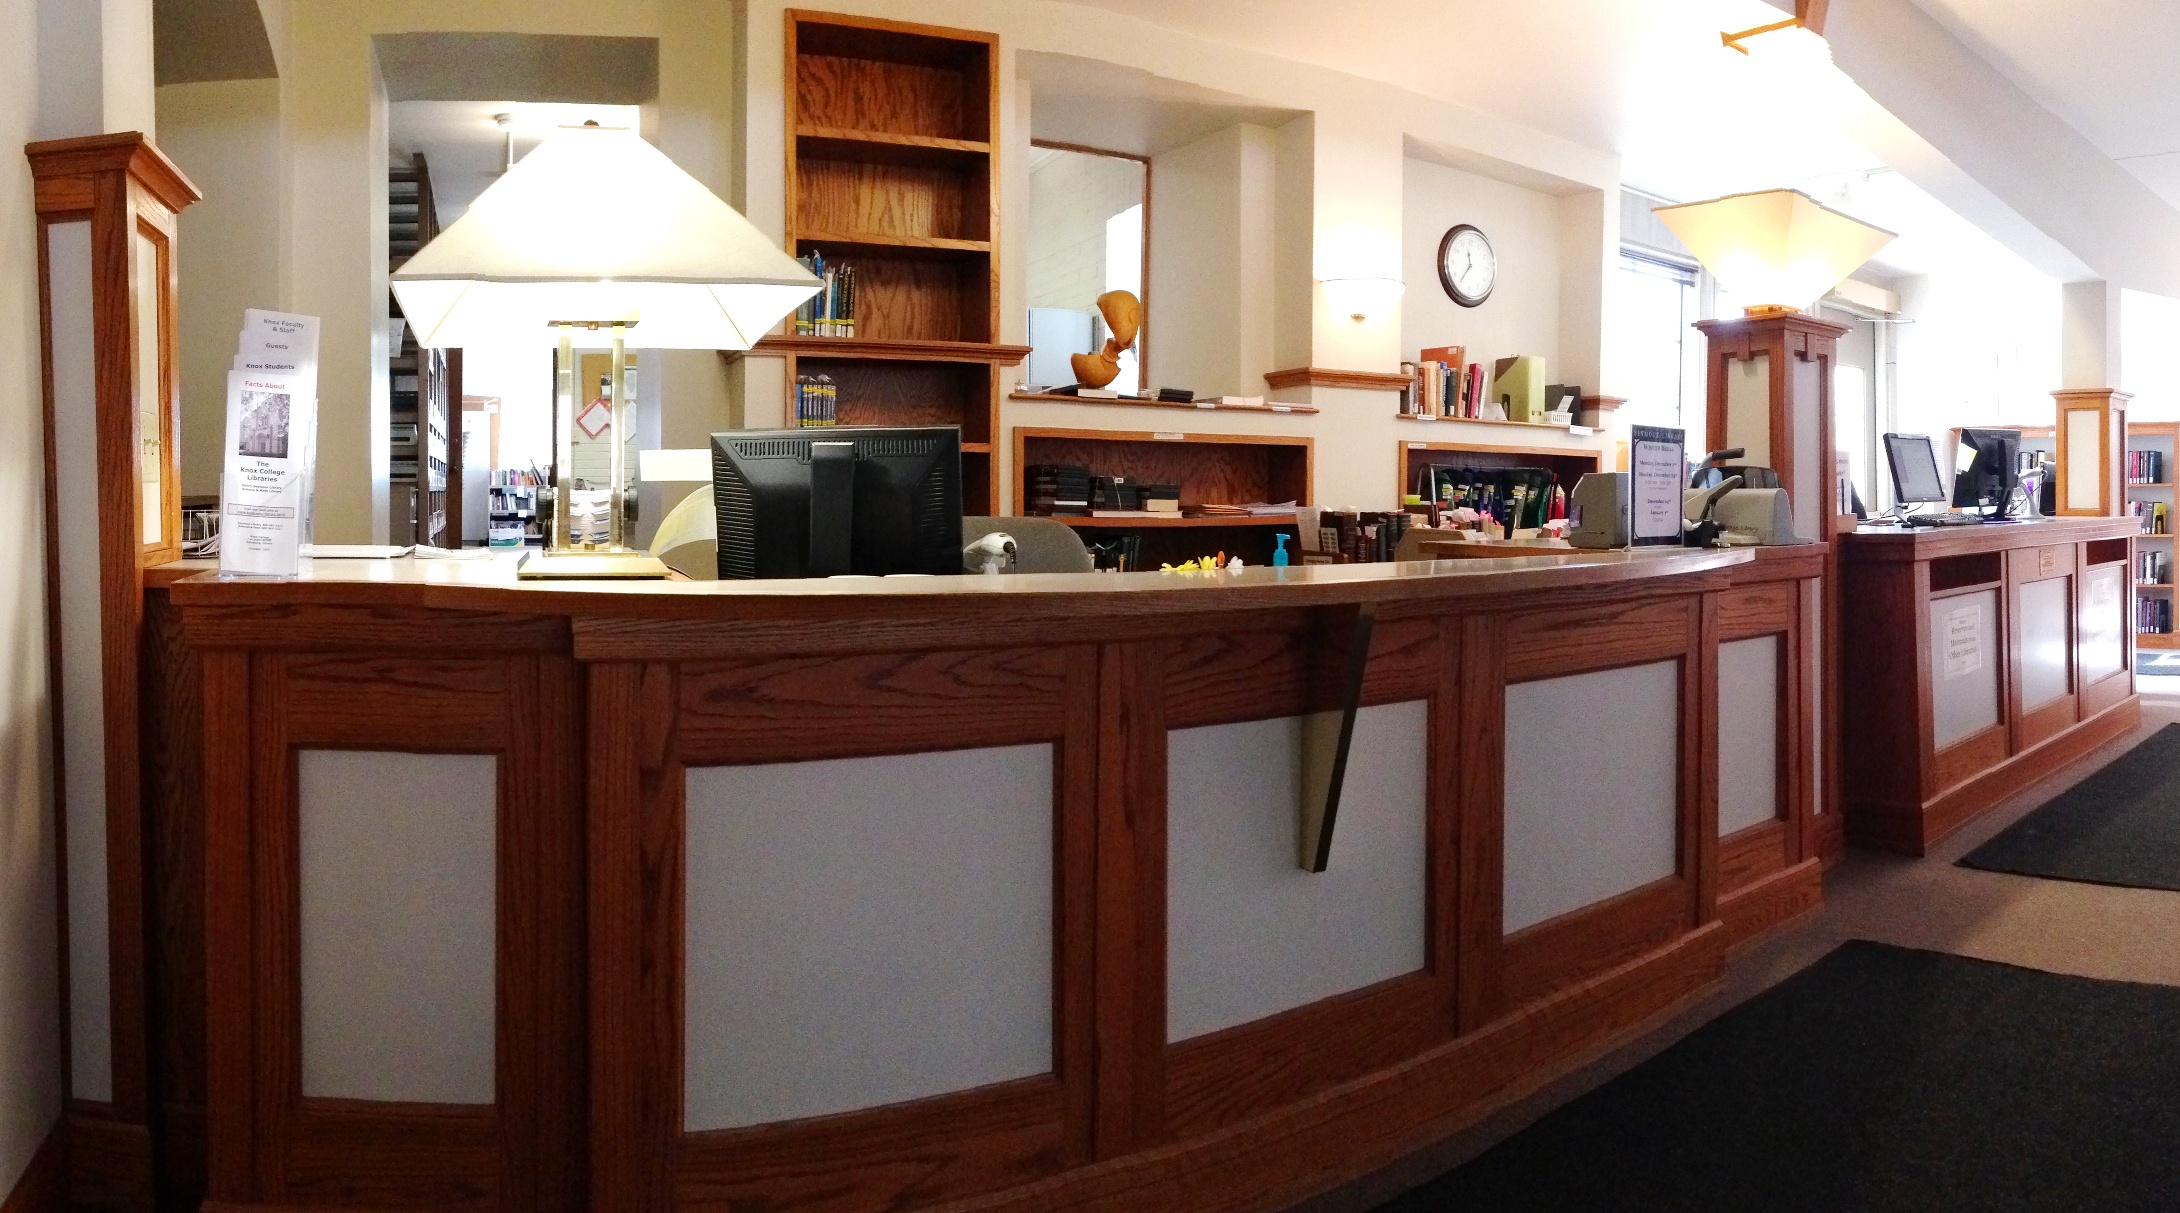 Circulation desk in Seymour Library